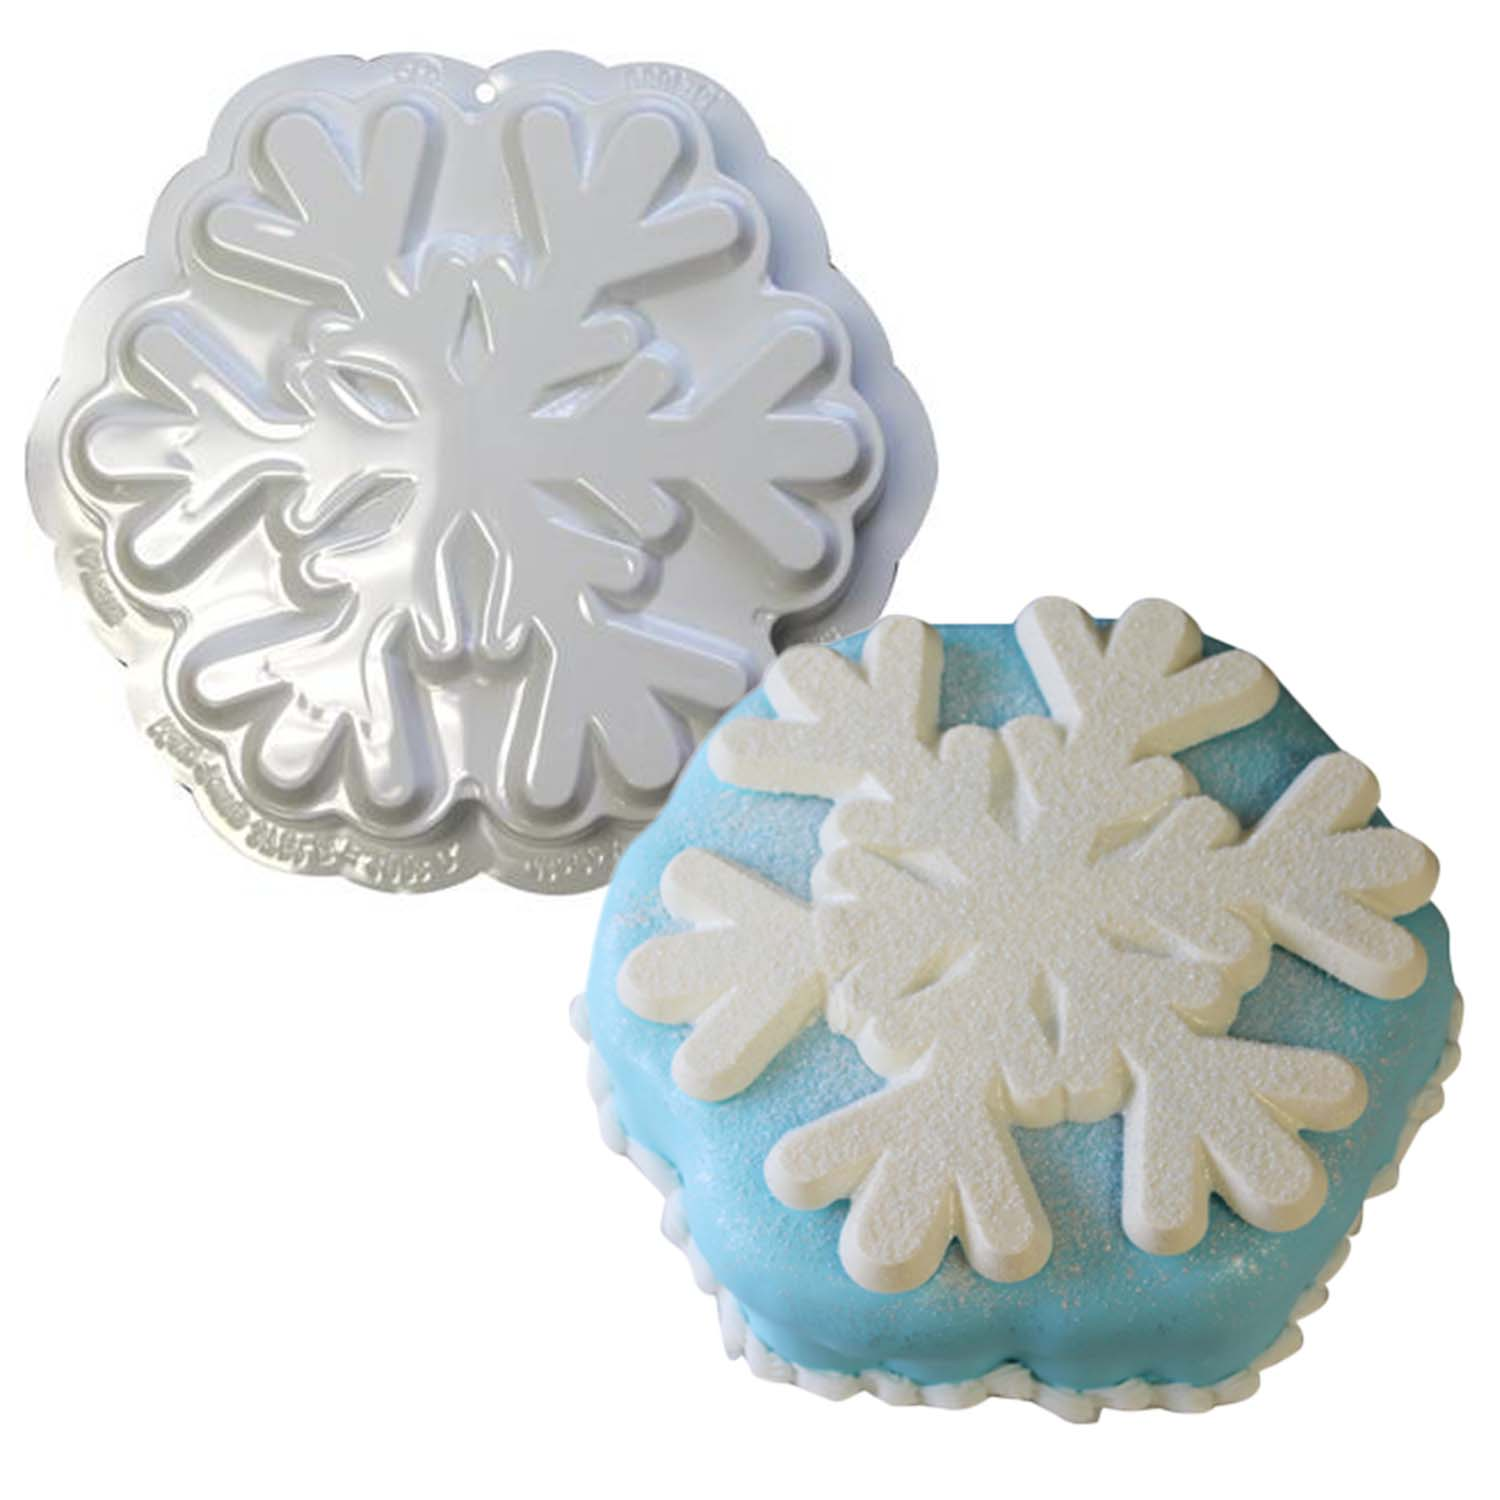 Winter Cake Pans and Bakeware